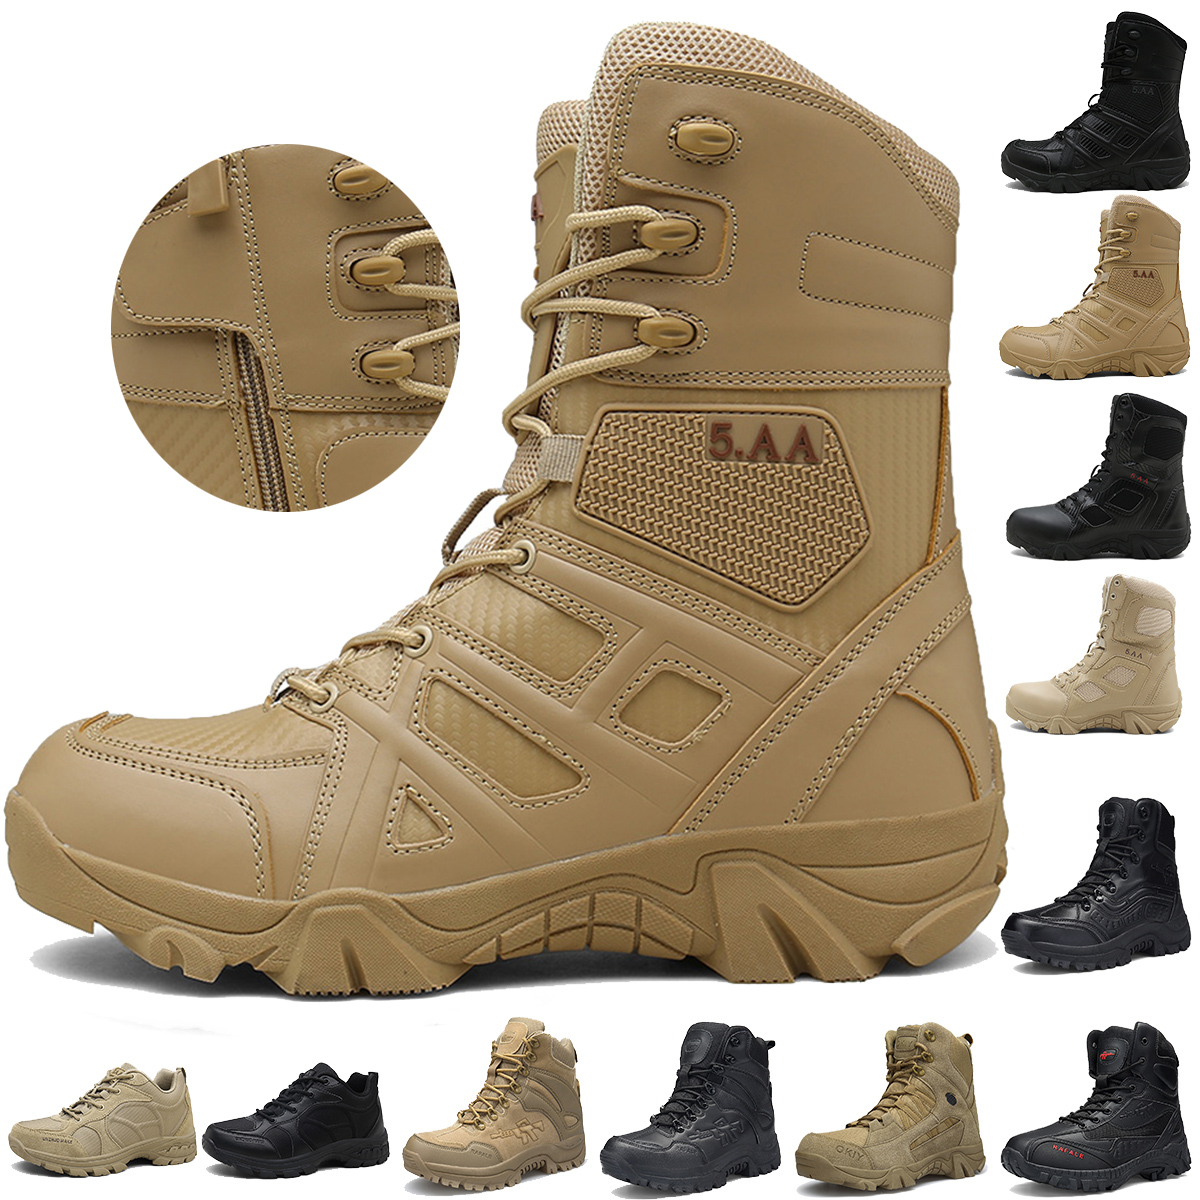 Boats Army Work Shoes Leather Snow Boots